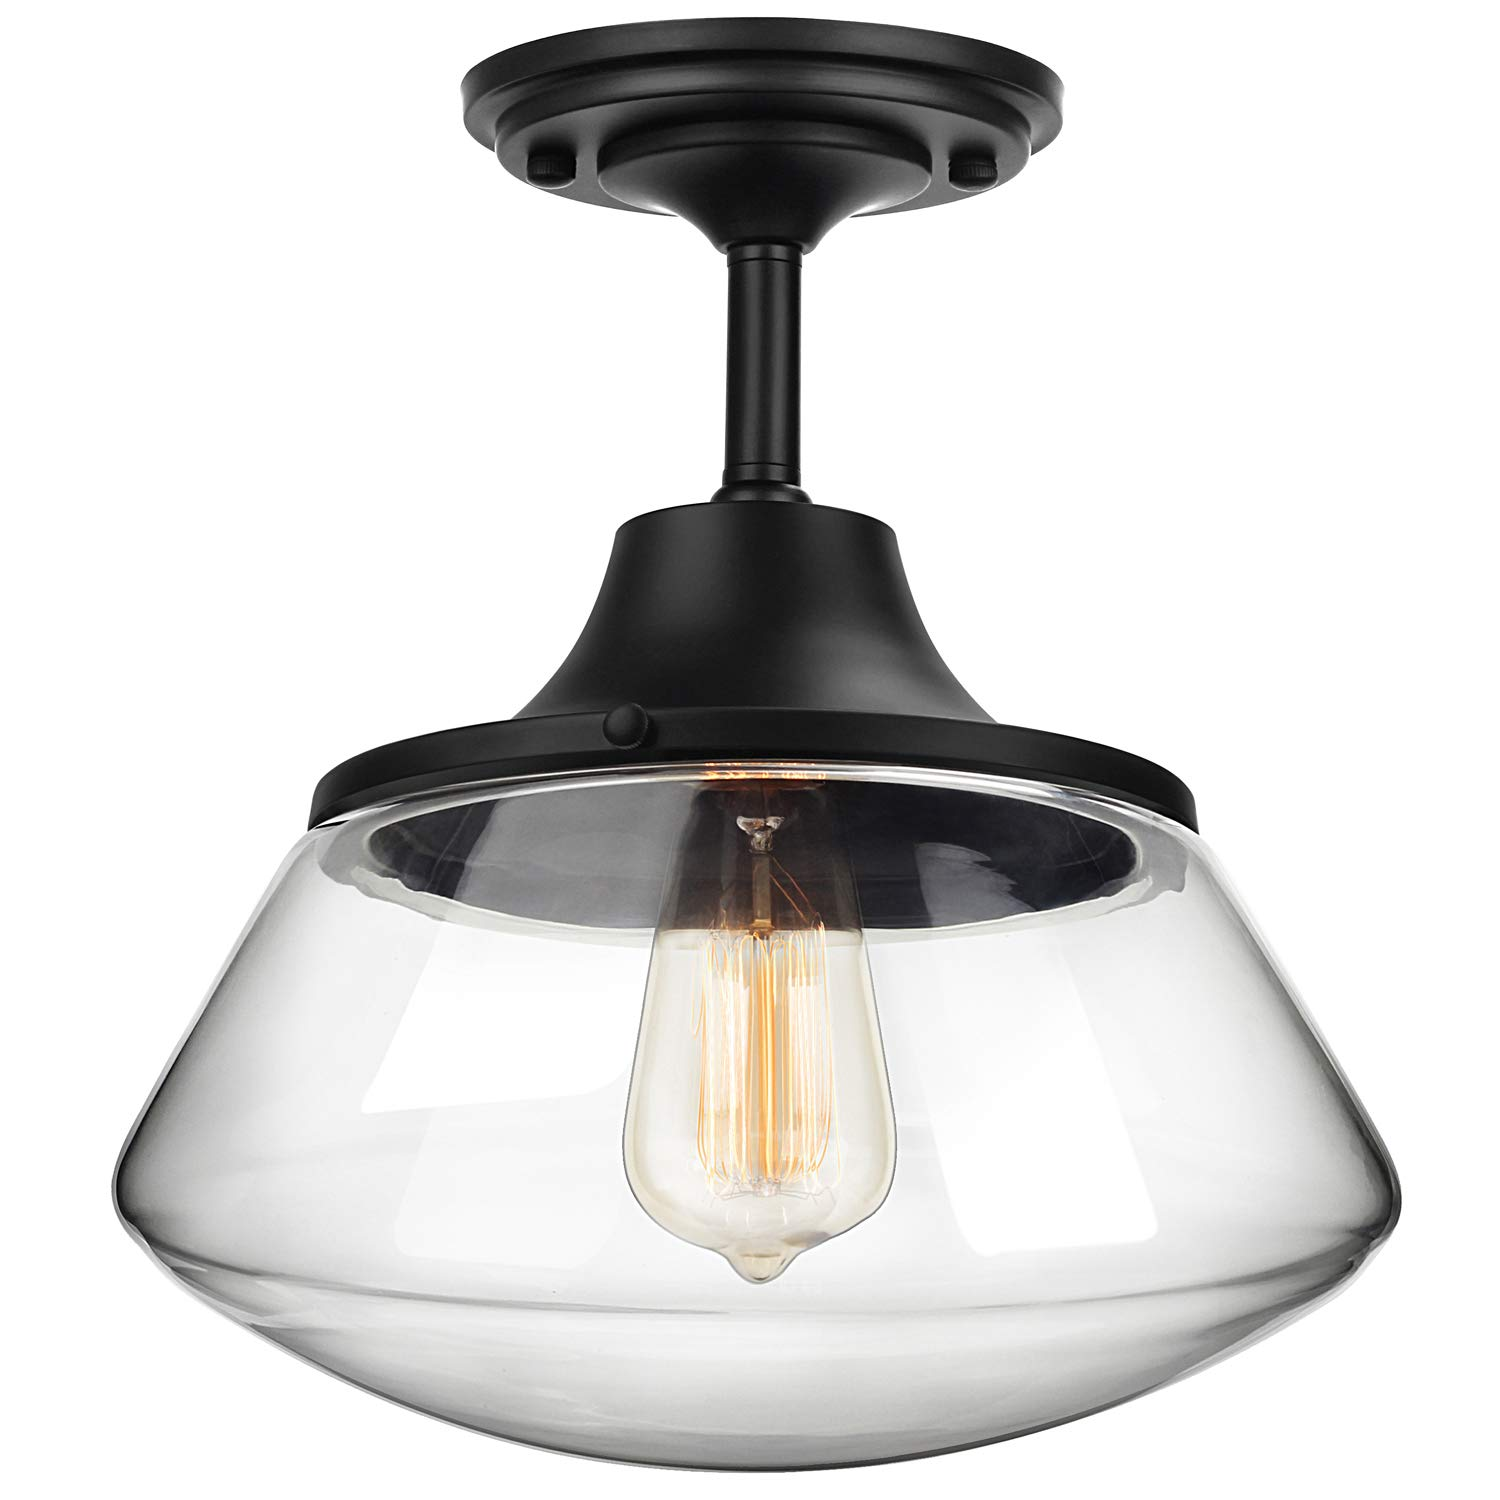 Petronius industrial semi flush mount ceiling light farmhouse lighting clear glass pendant lighting shade edison vintage style hanging lights fixture